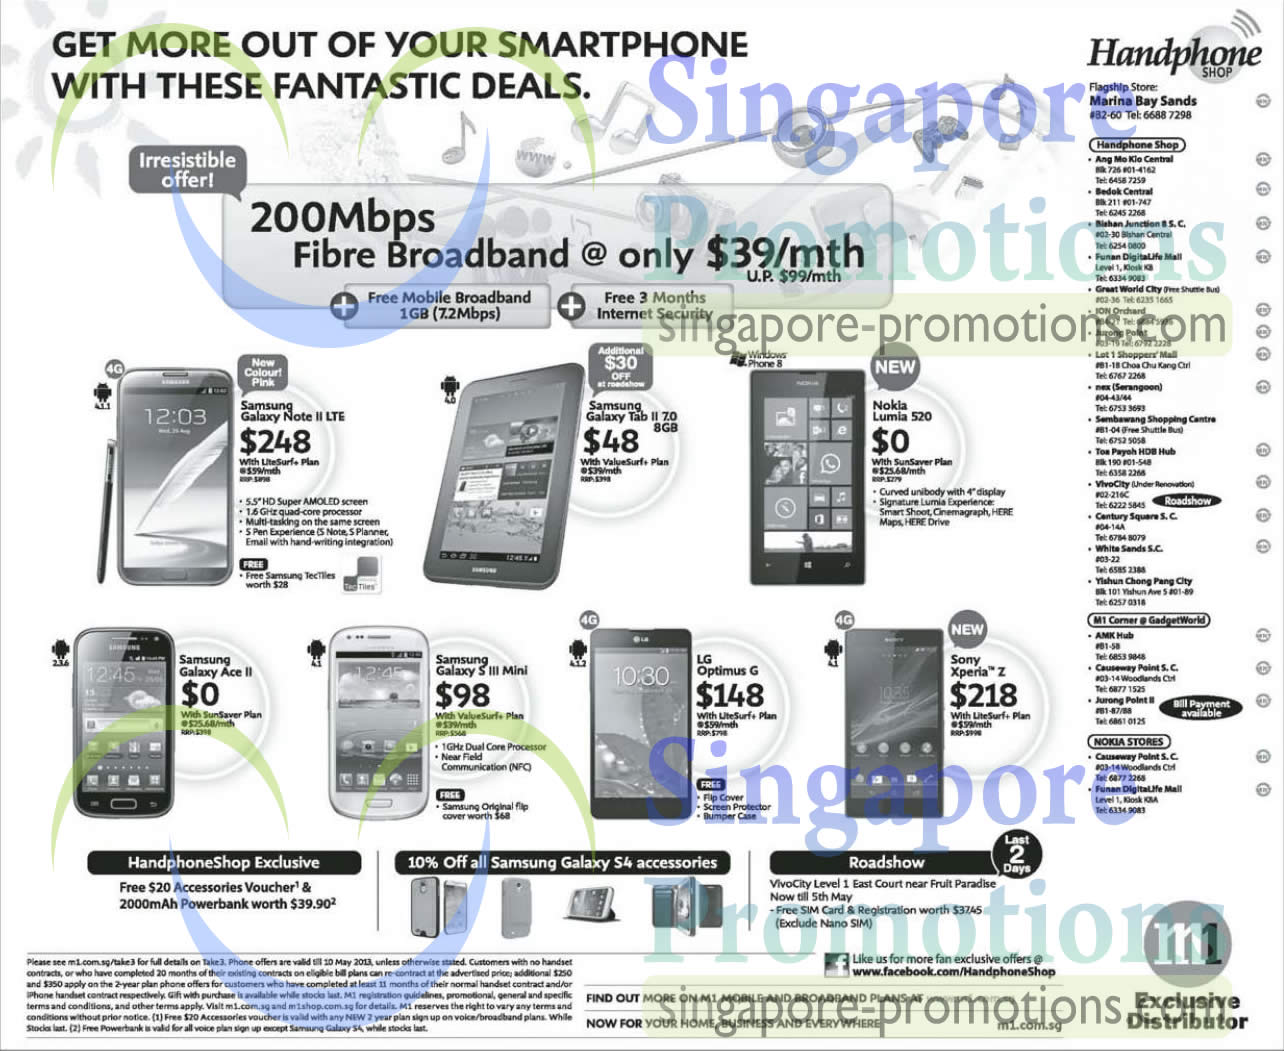 Handphone Shop Samsung Galaxy Note II LTE, Tab 2 7.0, Ace 2, S III Mini, LG Optimus G, Sony Xperia Z, Nokia Lumia 520